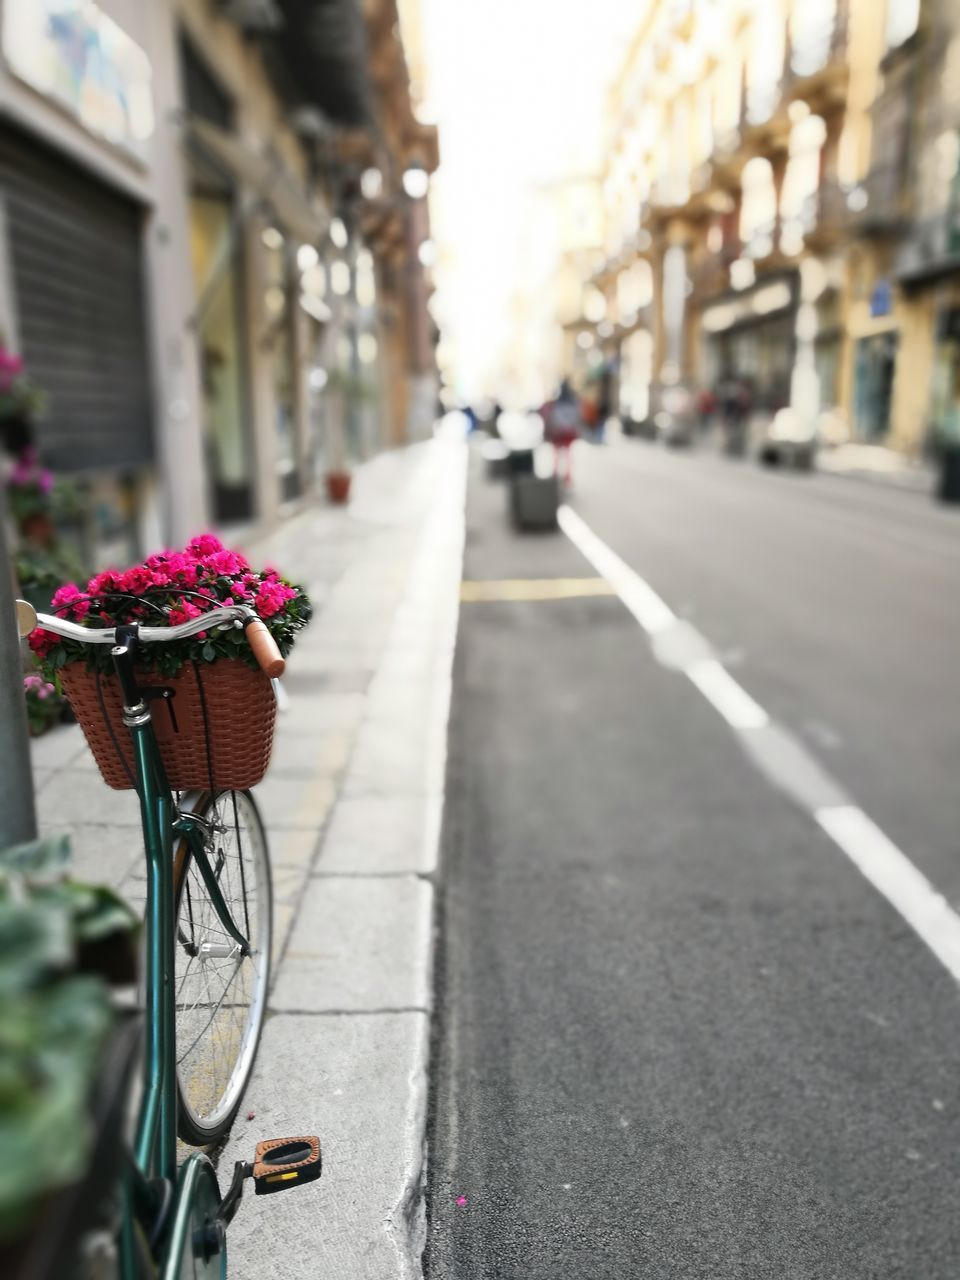 transportation, bicycle, land vehicle, mode of transport, flower, outdoors, street, bicycle basket, stationary, road, day, built structure, no people, building exterior, nature, architecture, close-up